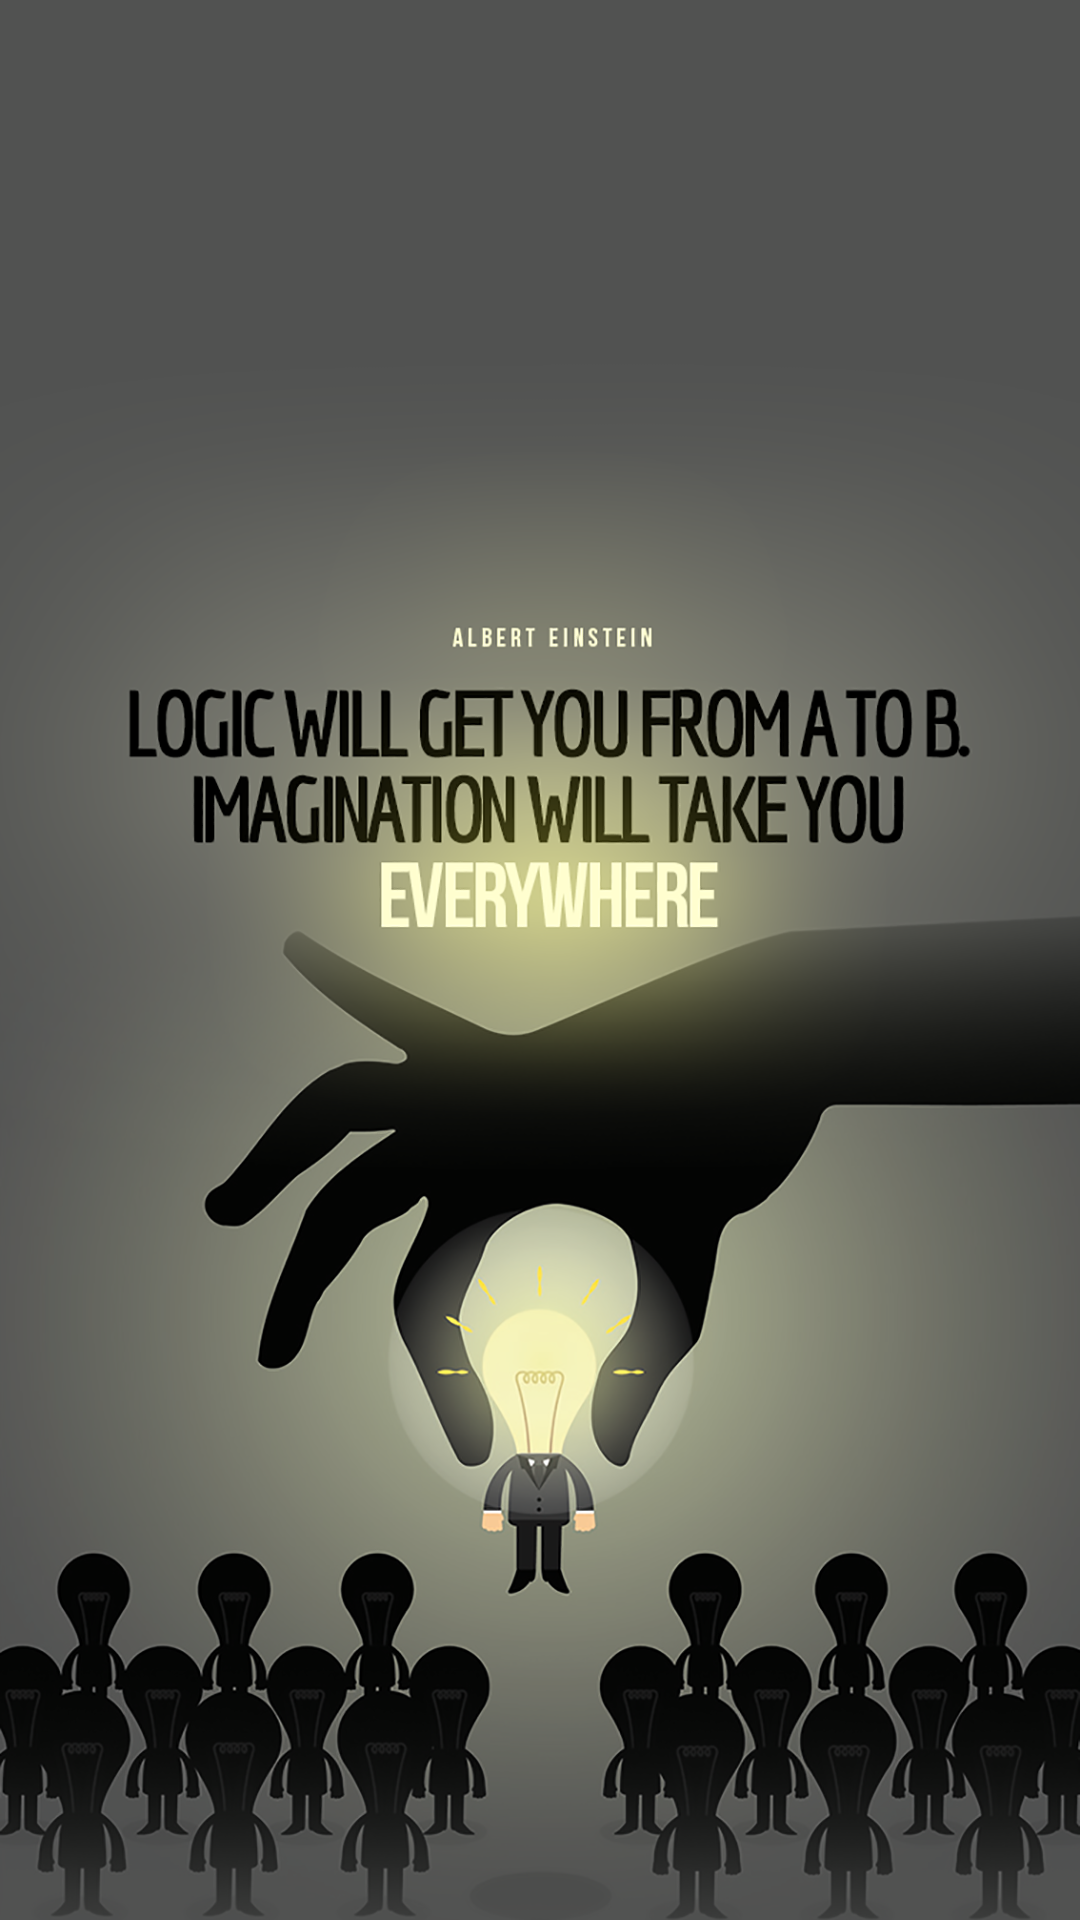 Tap And Get The Free App Art Creative Quotes Einstein Imagination Logic People Physics Hd Iphone 6 Plus Wallpaper Pendidikan